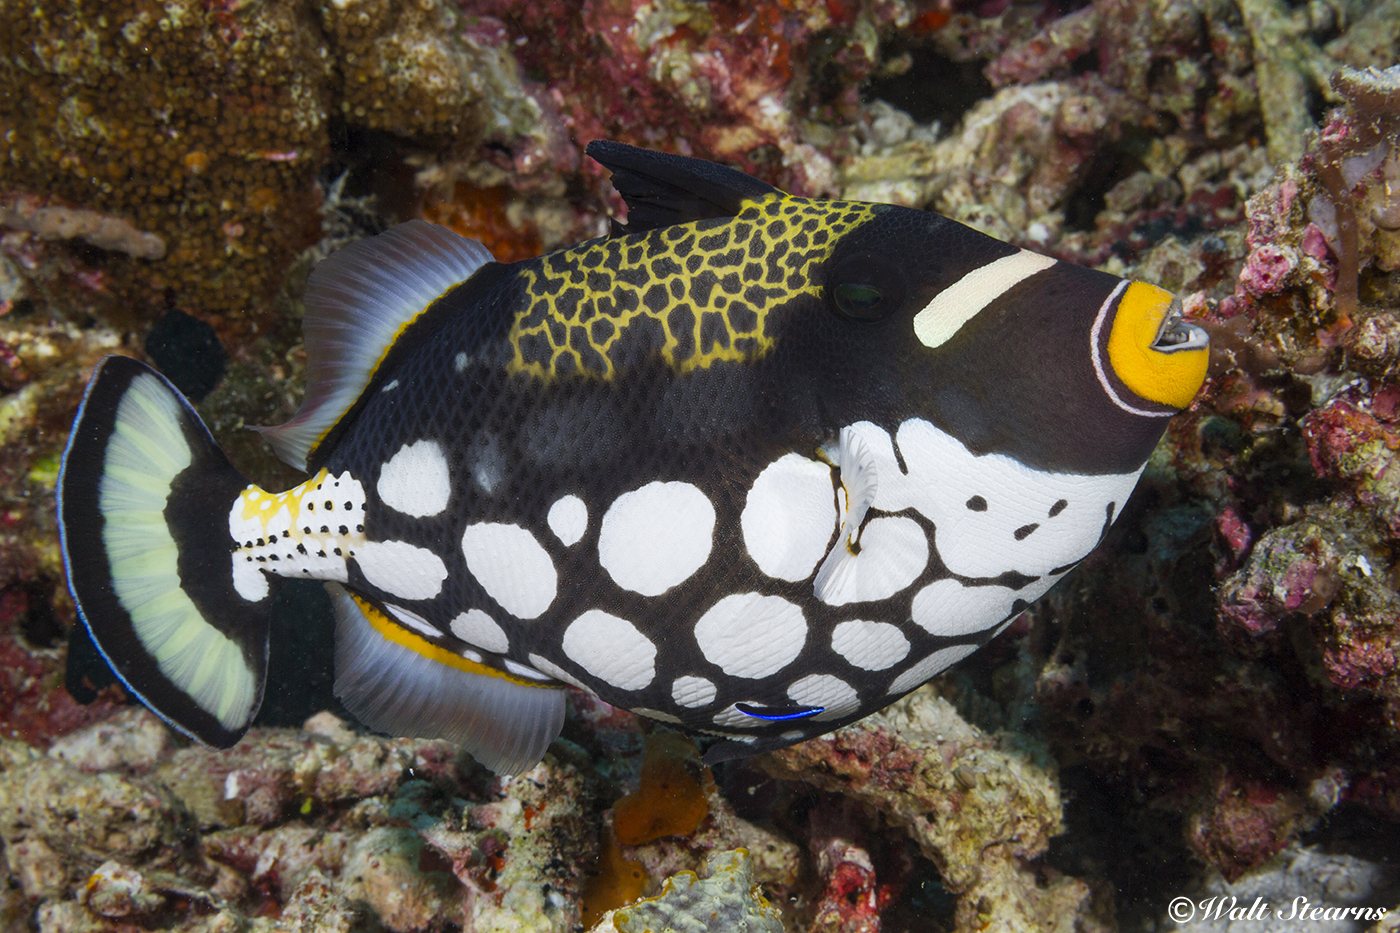 The bright colors and patterns of the clown triggerfish make it a prize subject for underwater photographers. Unfortunately, these same attributes make it a target for the aquarium trade.